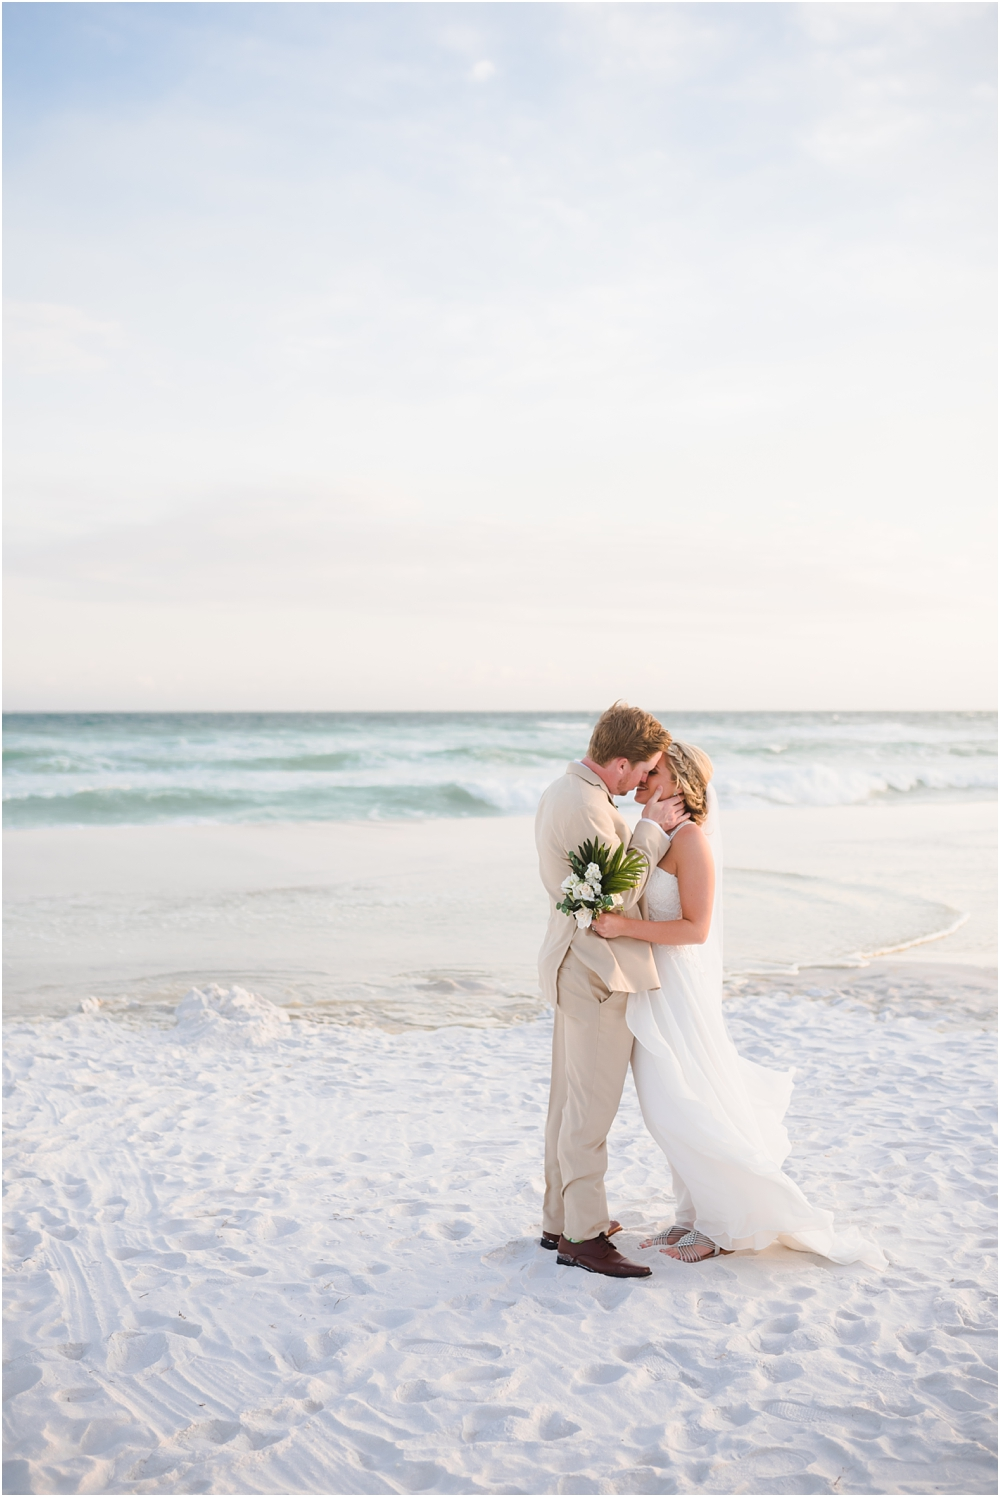 dillard-florida-wedding-photographer-panama-city-beach-dothan-tallahassee-kiersten-grant-photography-154.jpg